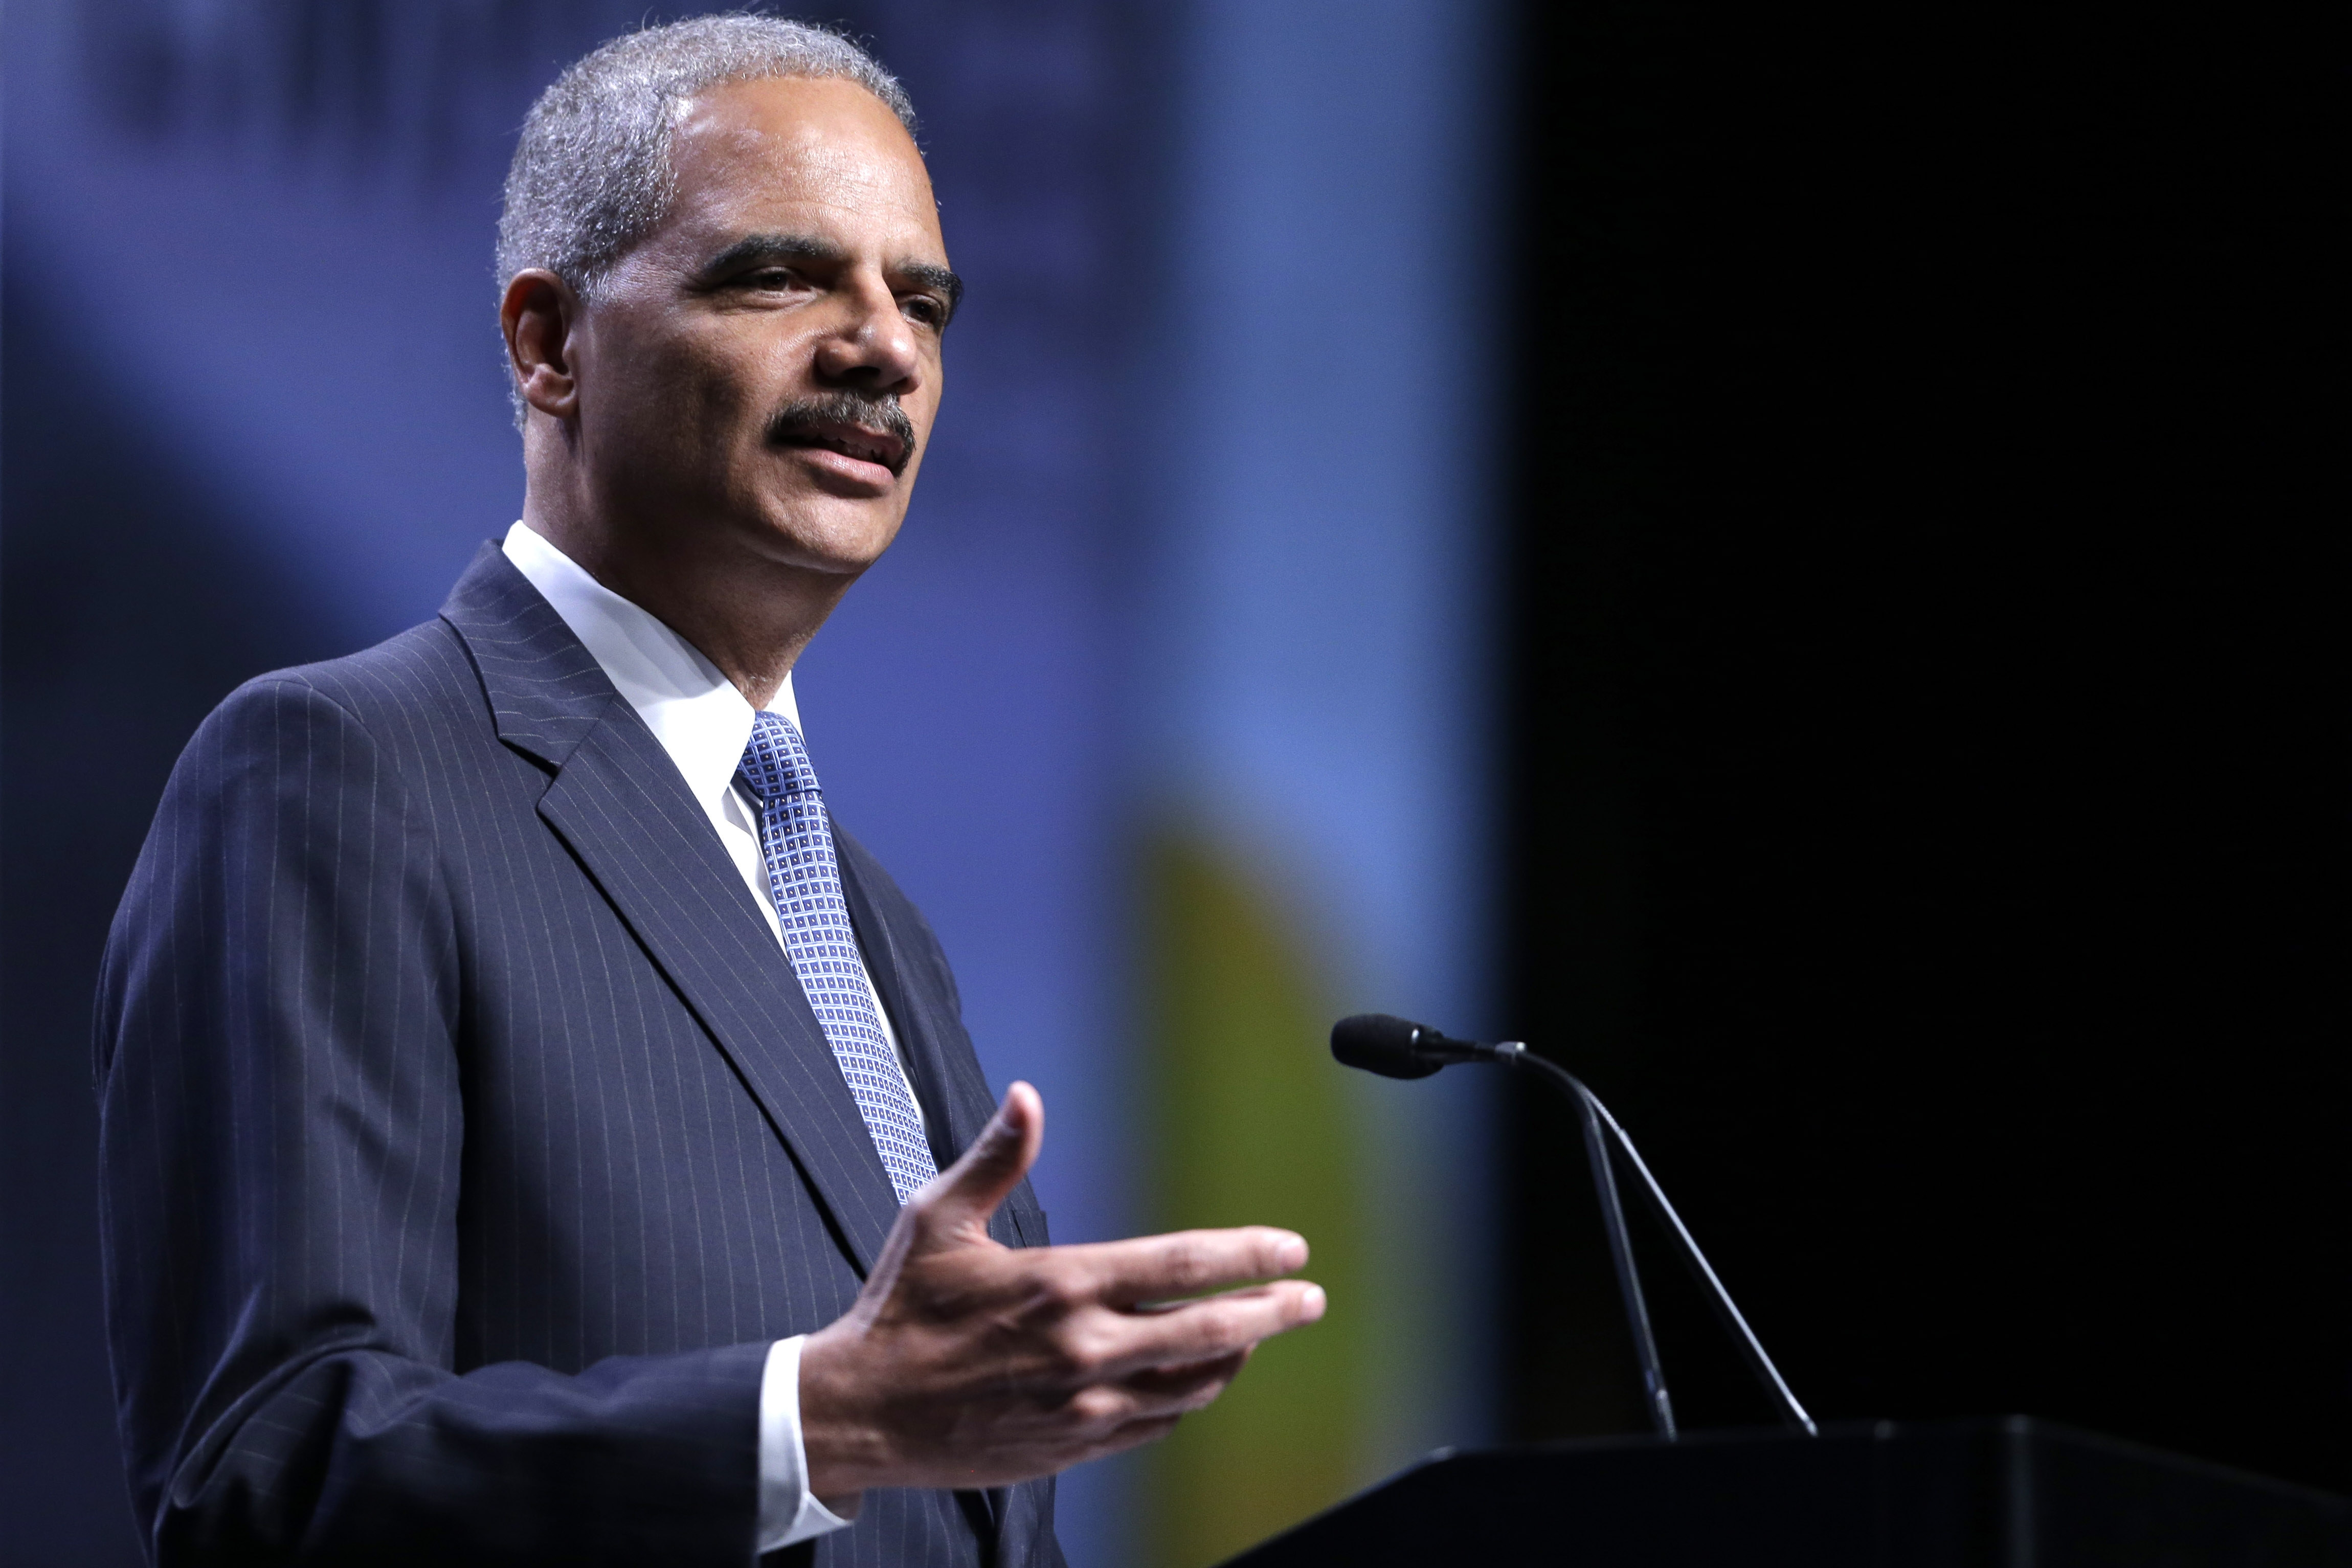 """Attorney General Eric Holder promised to protect the Voting Rights Act, calling it """"the cornerstone of modern civil rights law."""""""